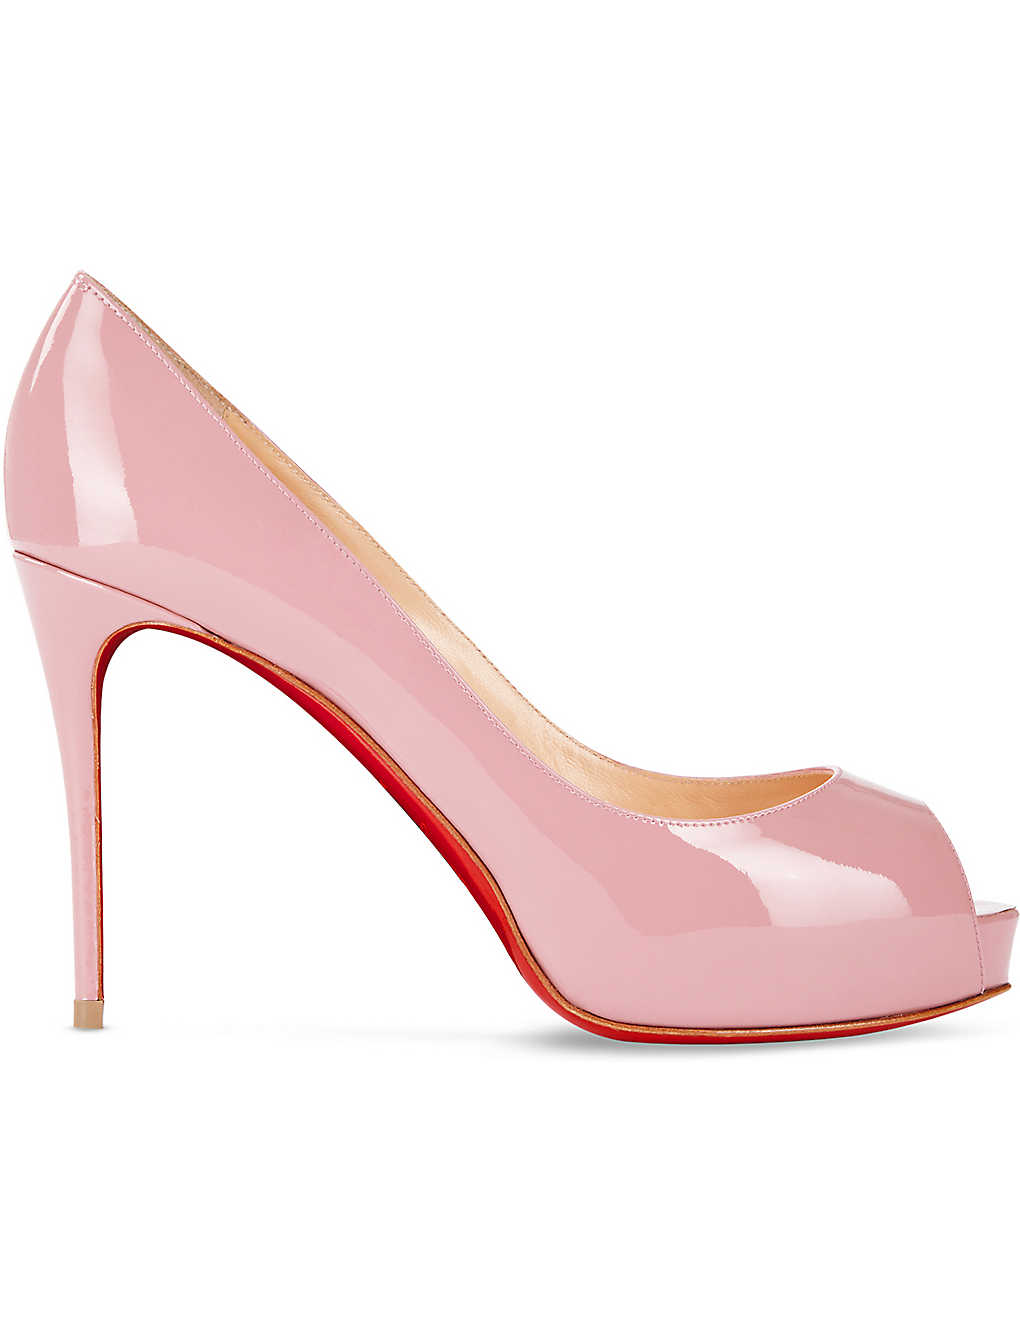 new arrival 06a8c a5250 CHRISTIAN LOUBOUTIN - New Very Prive 100 patent | Selfridges.com